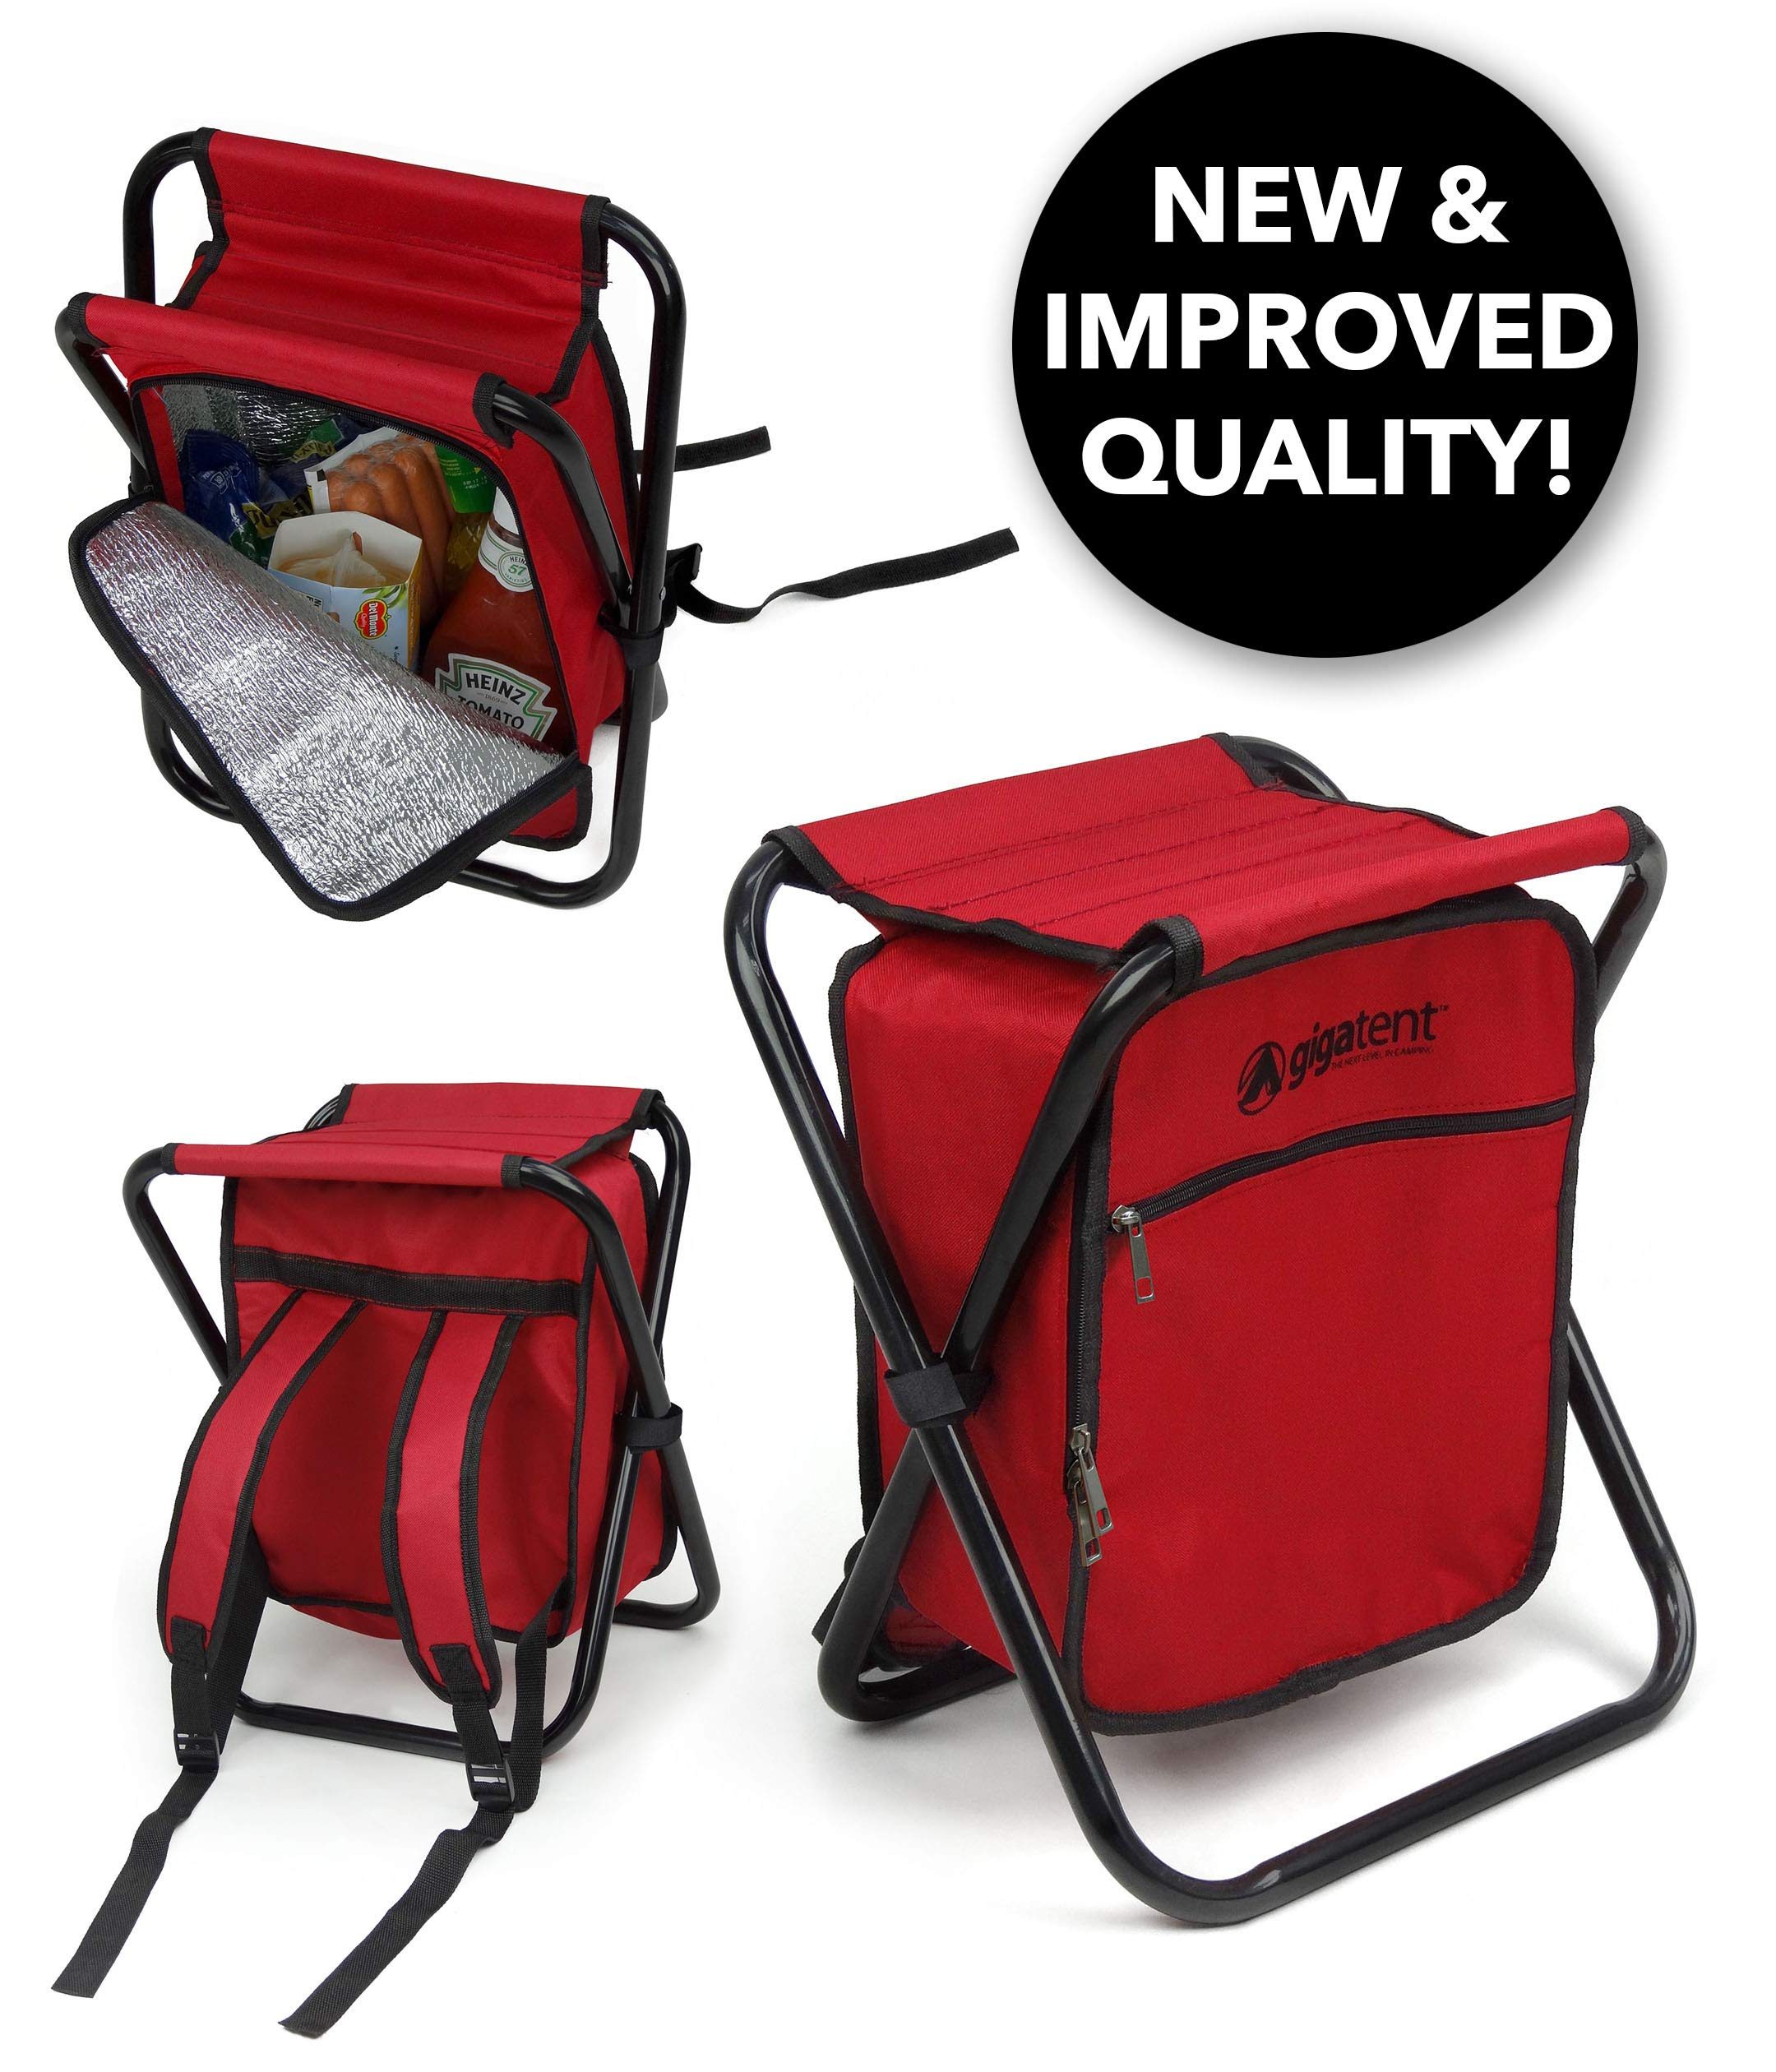 Folding Cooler and Stool Backpack - Multifunction Red Collapsible Camping Seat and Insulated Ice Bag with Padded Shoulder Straps - by GigaTent